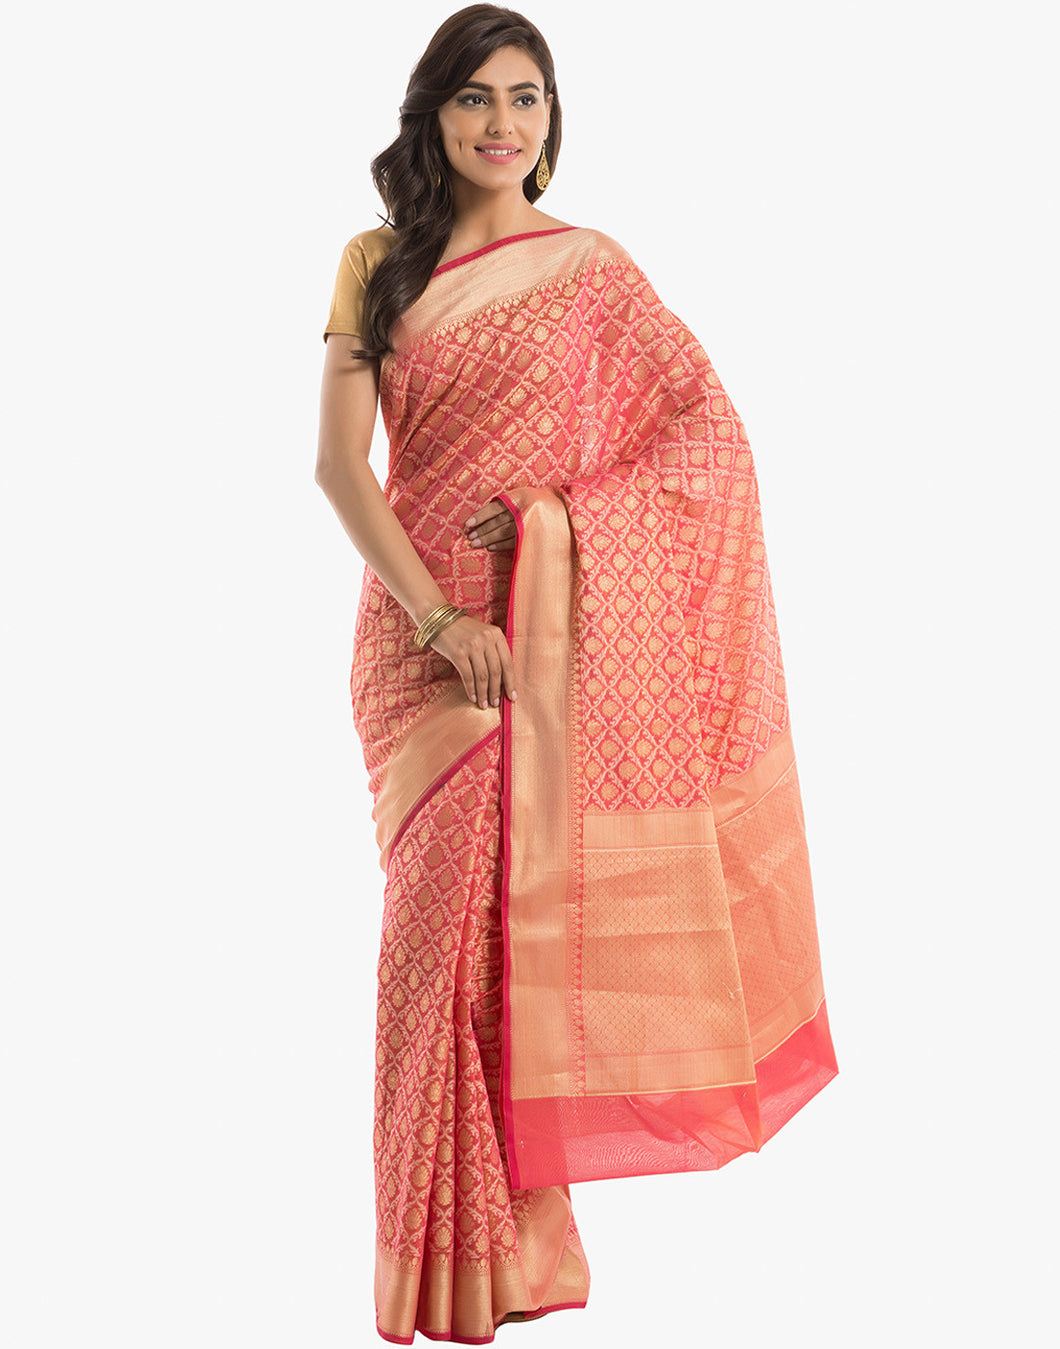 Cotton Saree With All-over Floral Zari Jaal By Meena Bazaar